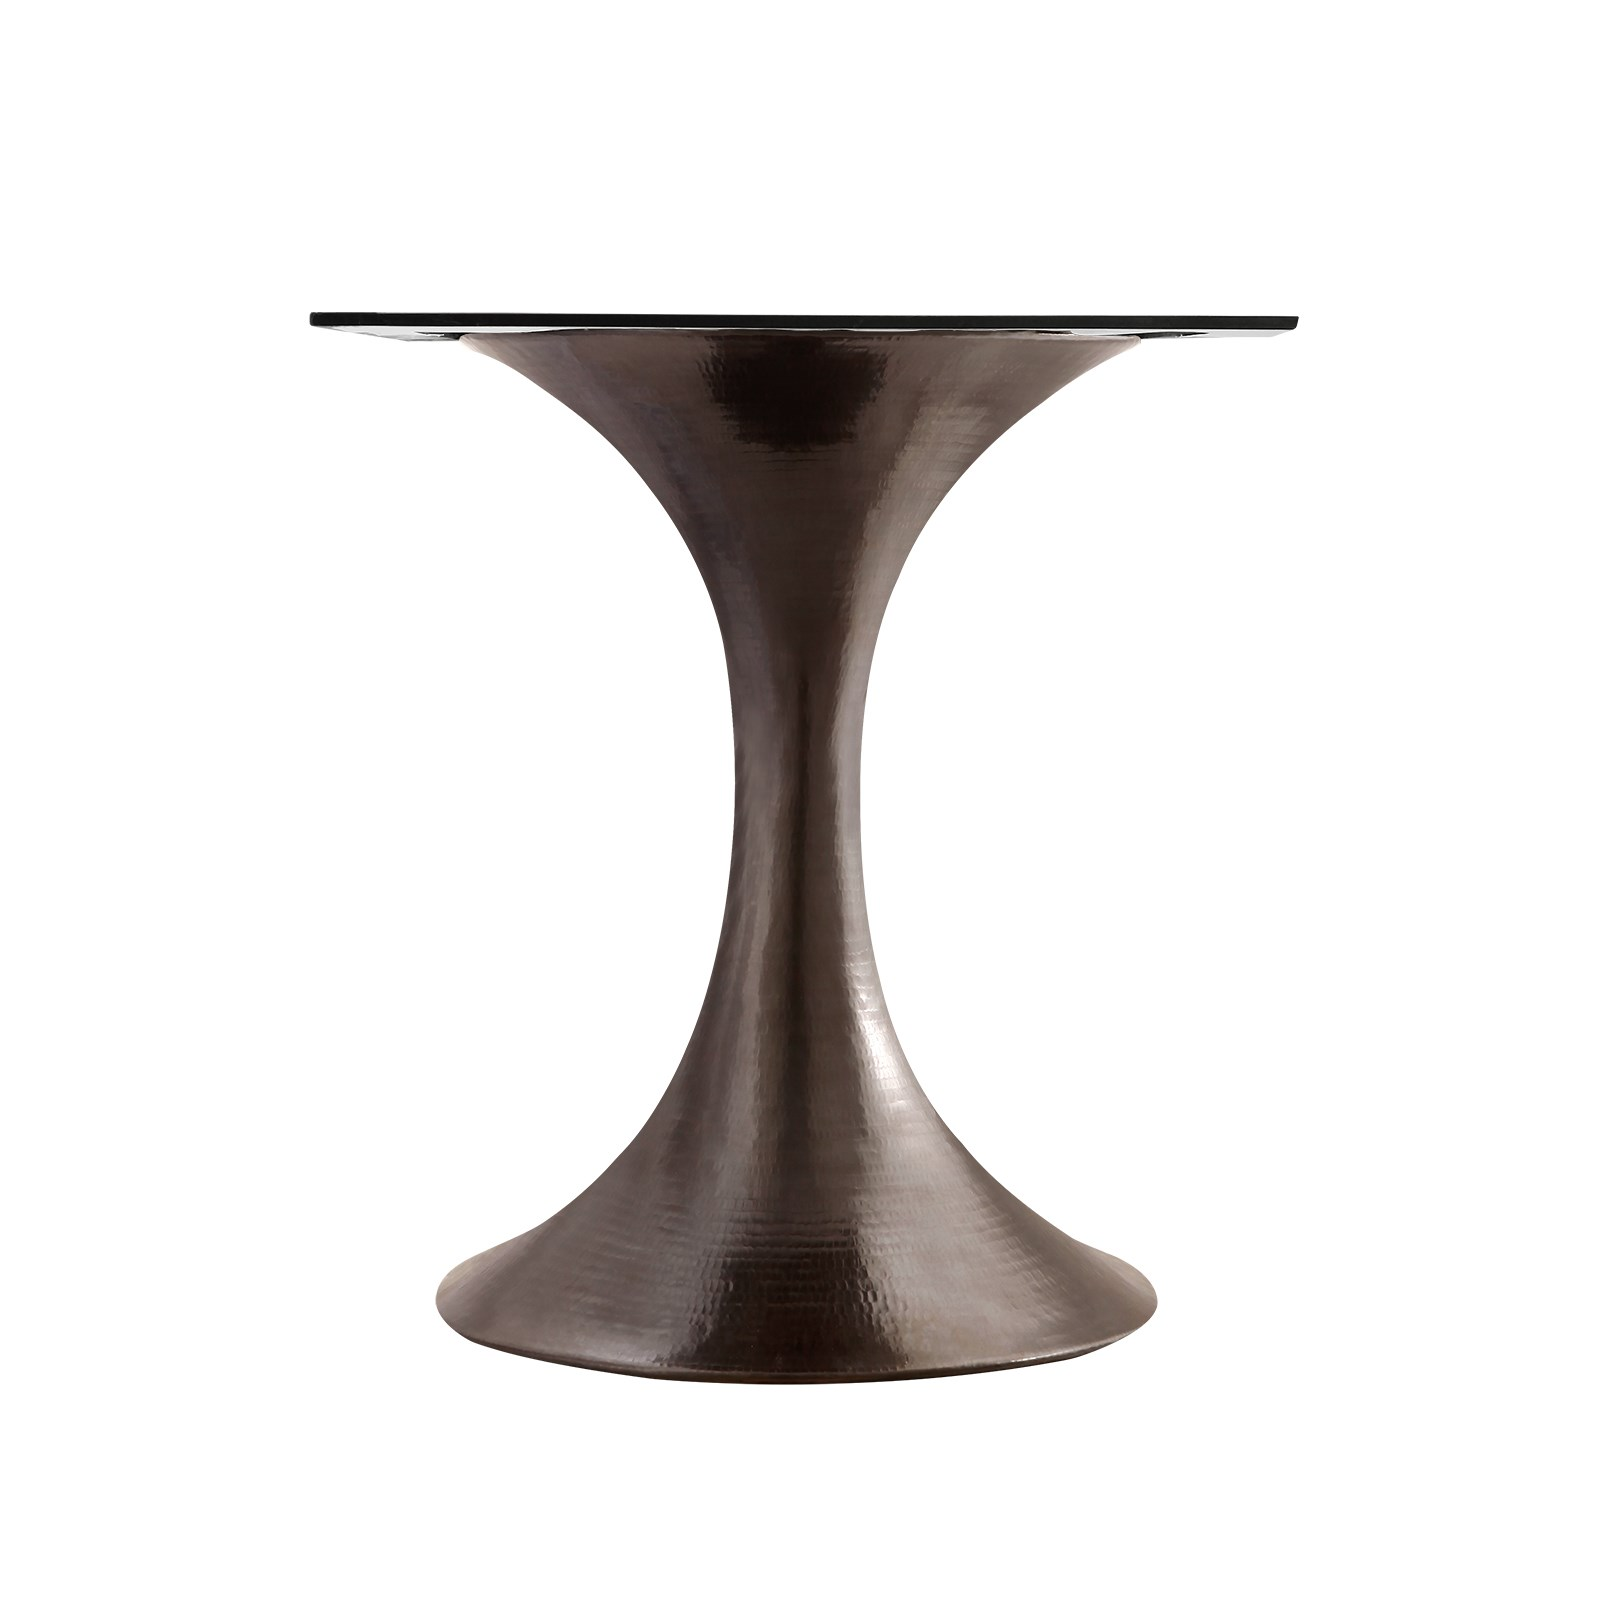 Stockholm Bronze Dining Table Base Pairs with 52quot amp 60  : STO 375 804 Blg from www.bungalow5.com size 1600 x 1600 jpeg 94kB